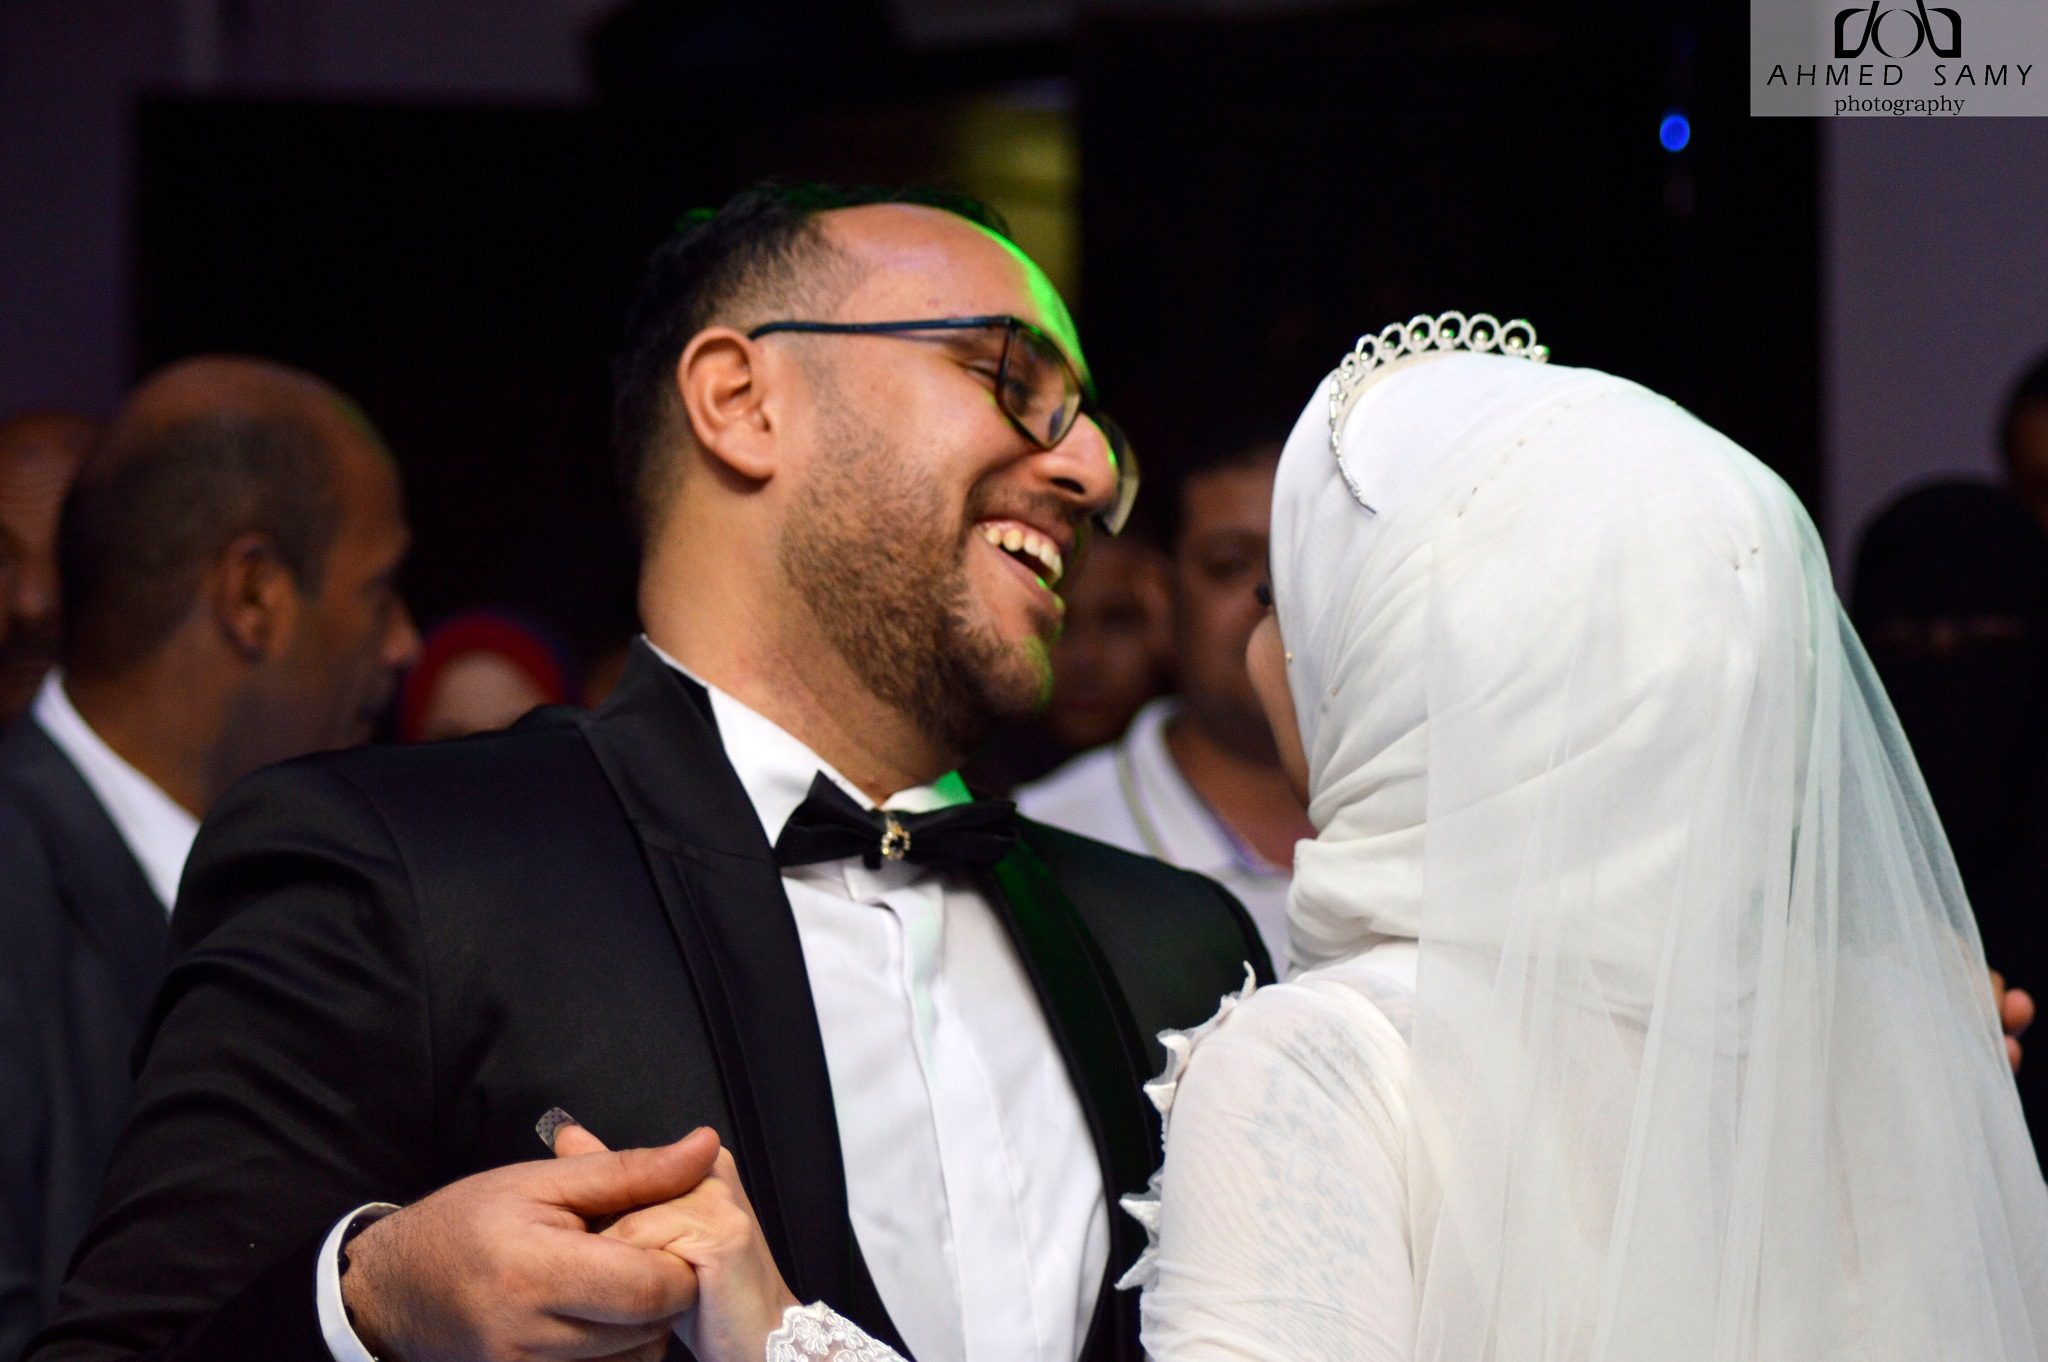 photo of dancing by Ahmed Samy